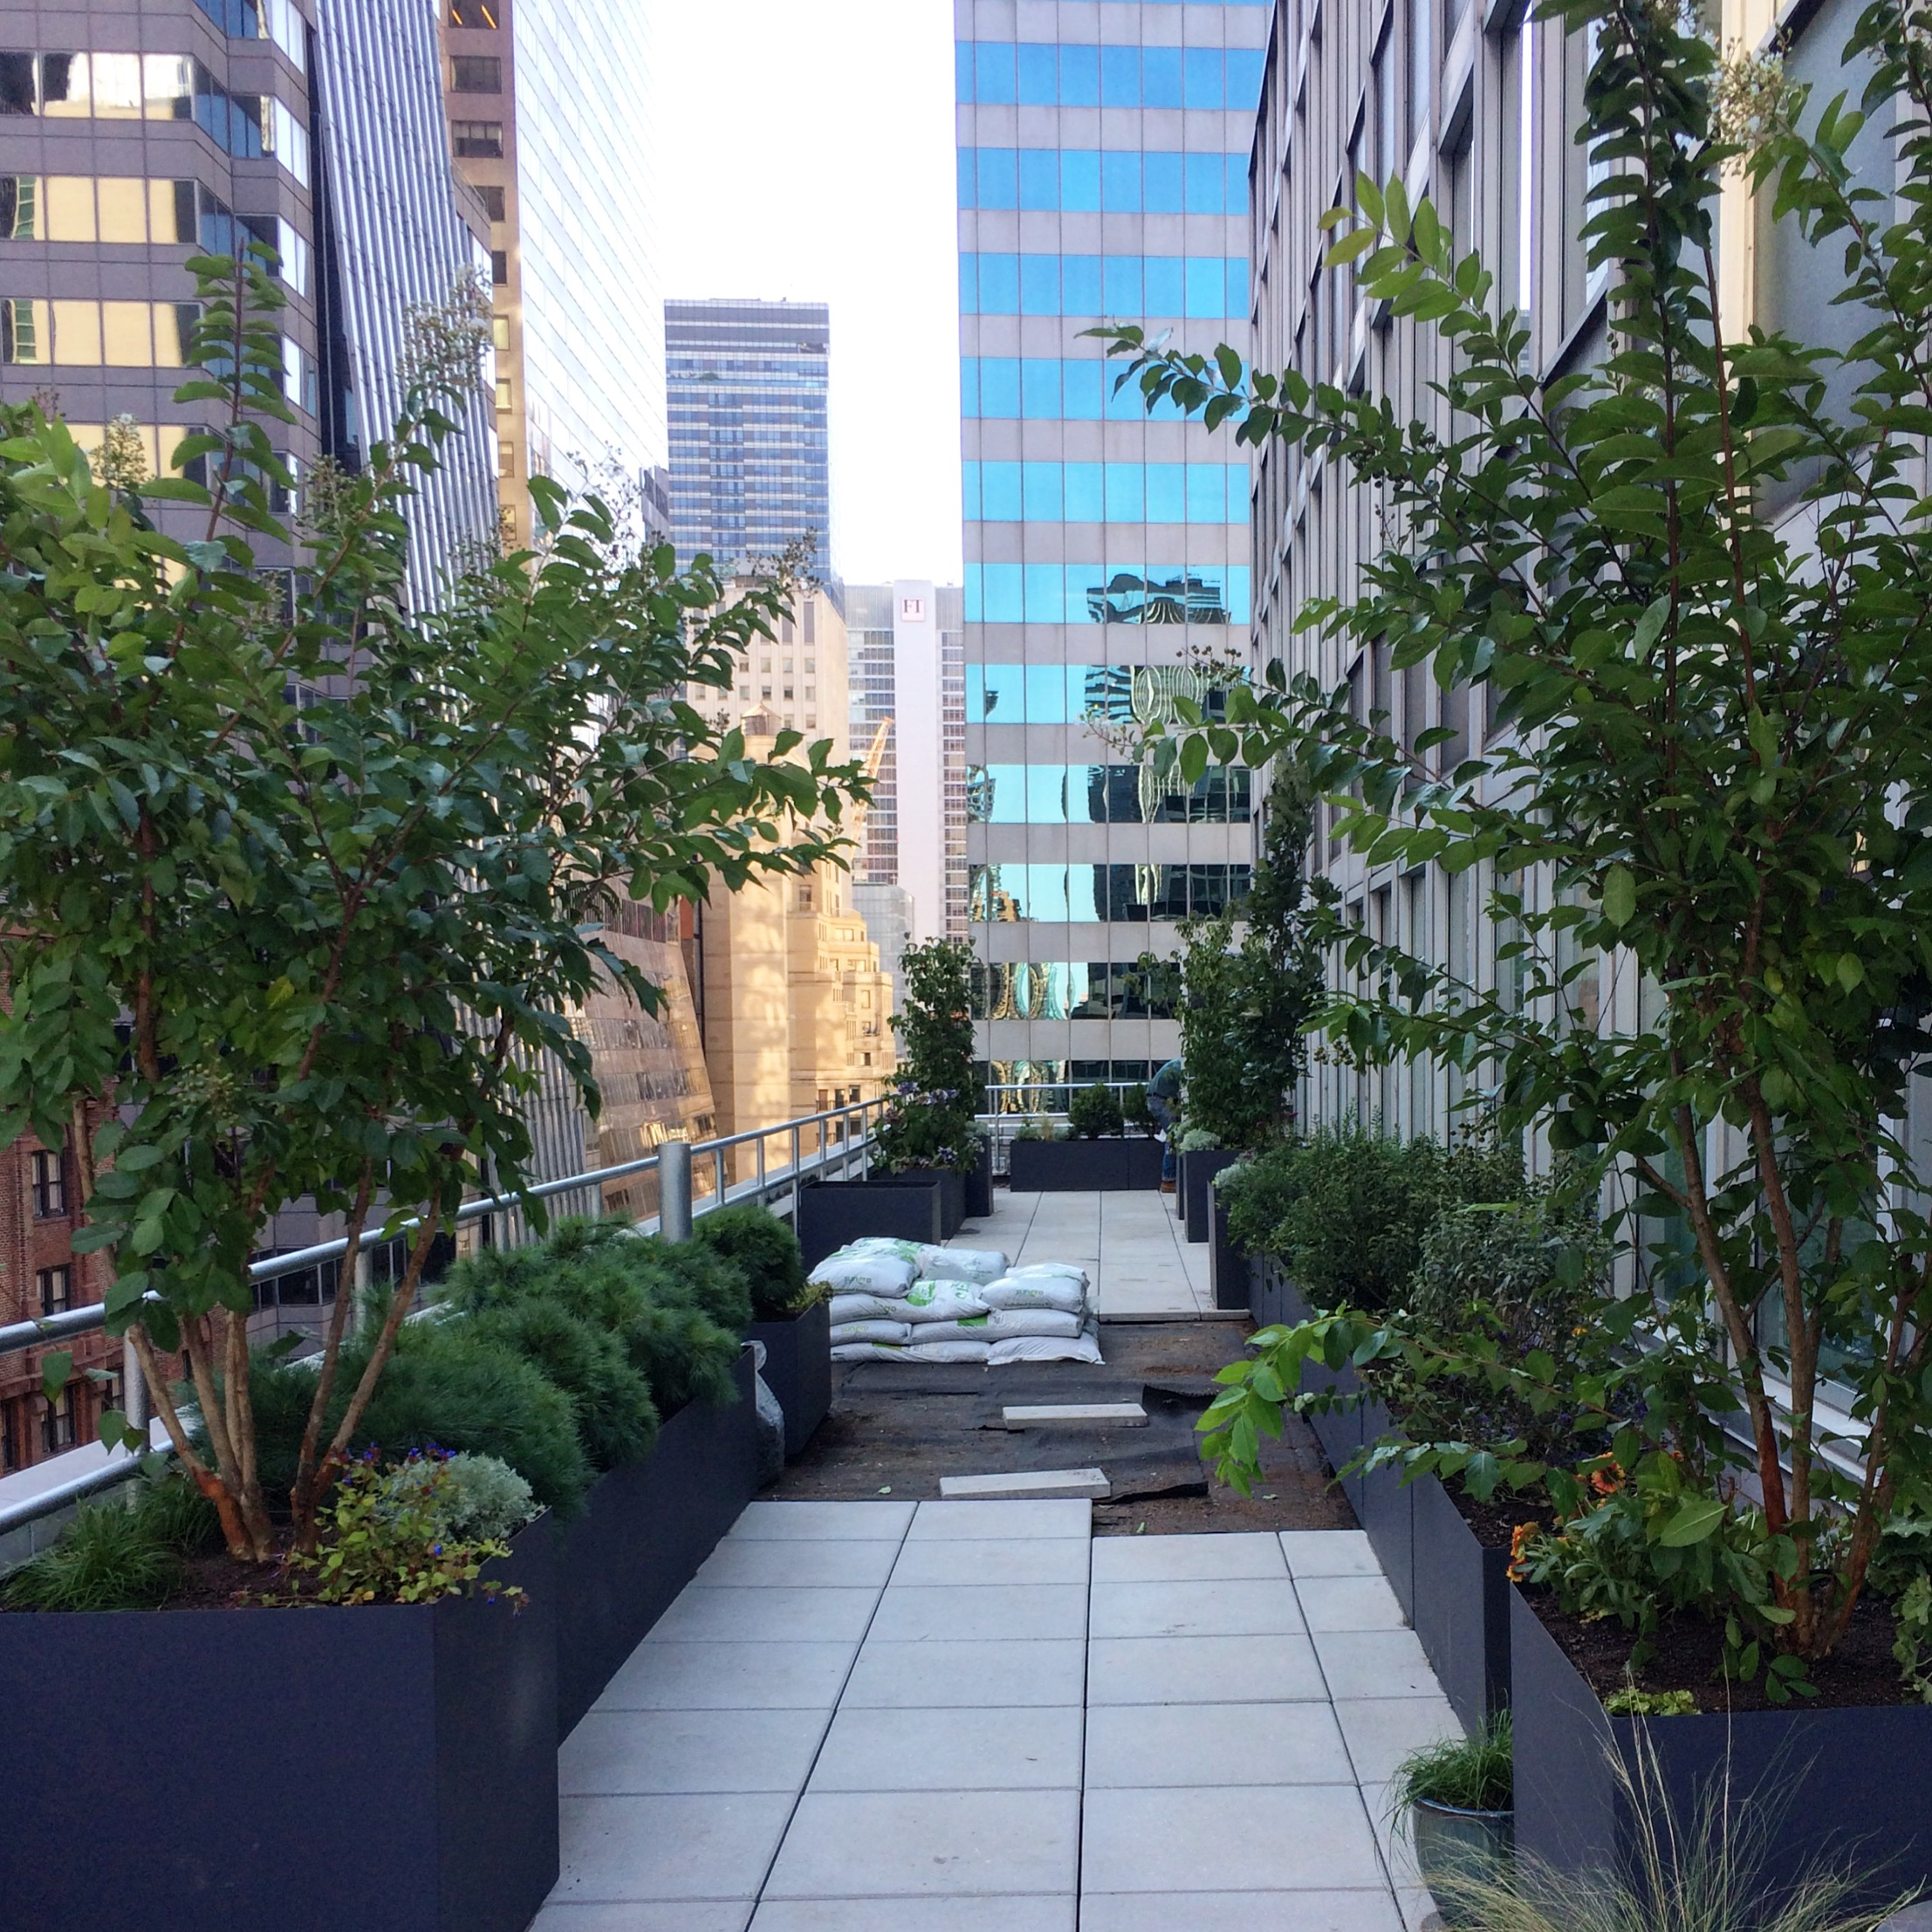 Planting and green roof installation underway on 16th floor roof terrace on Park Avenue in midtown Manhattan.